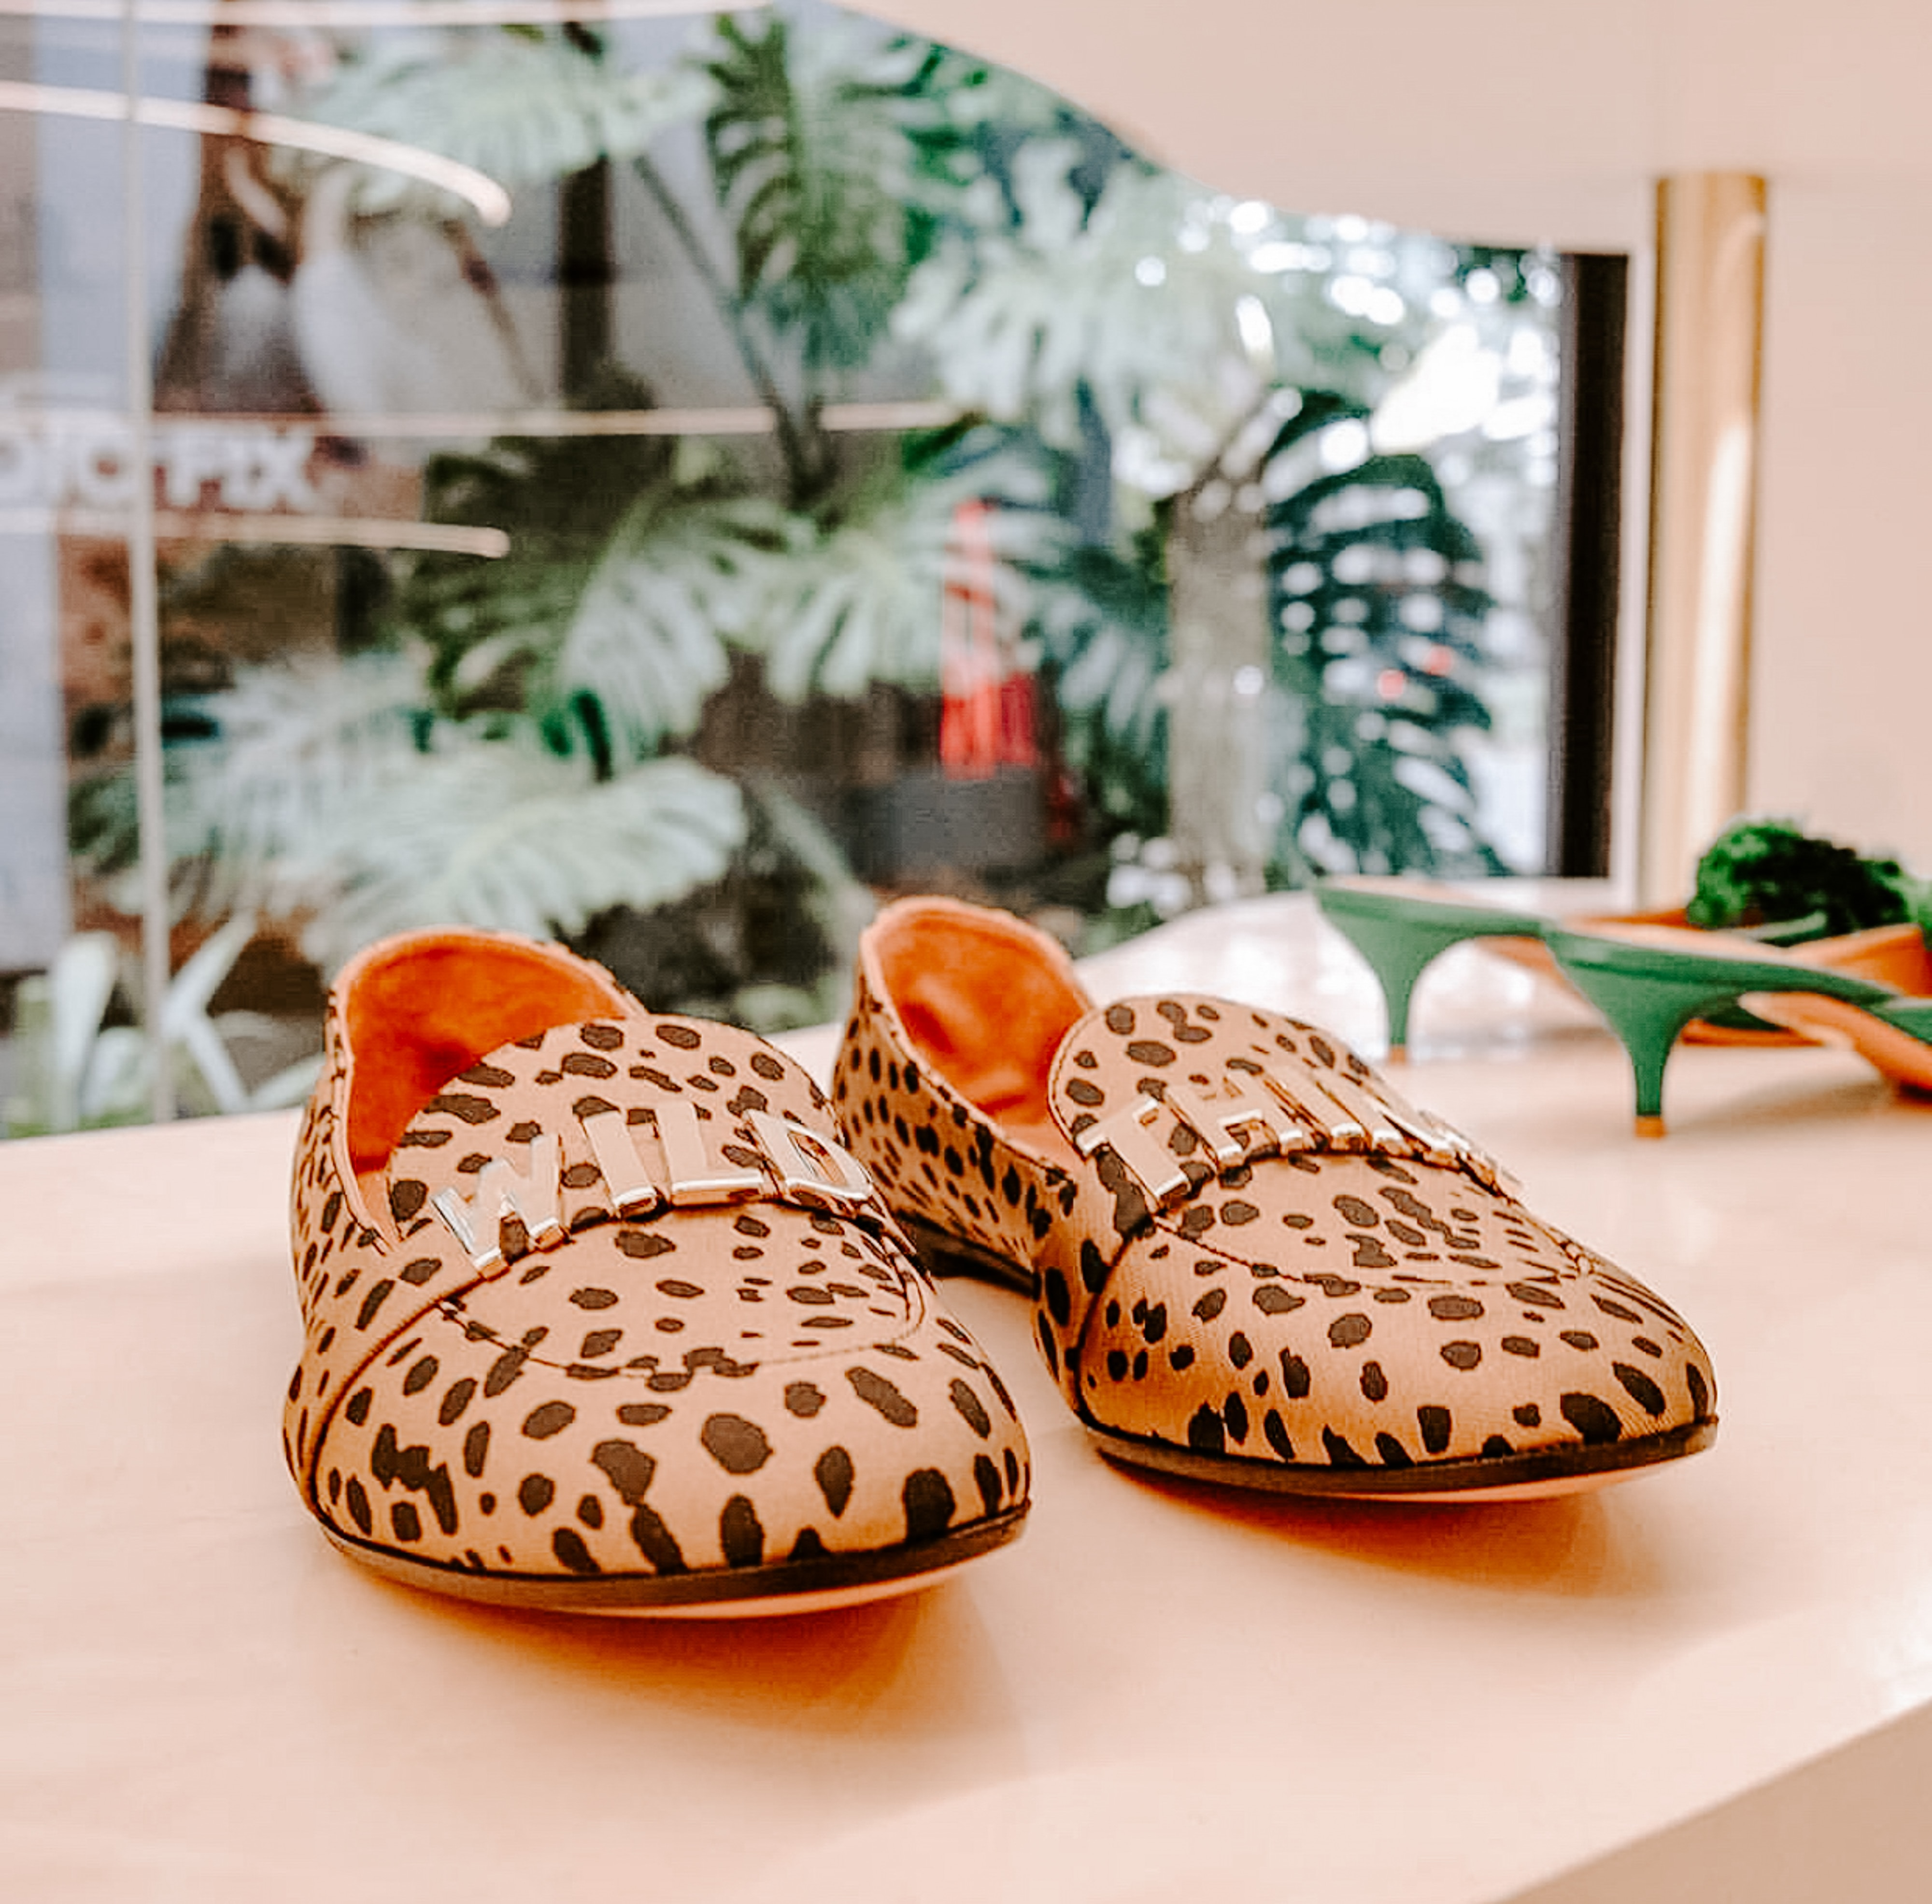 Leopard loafers on display in a store